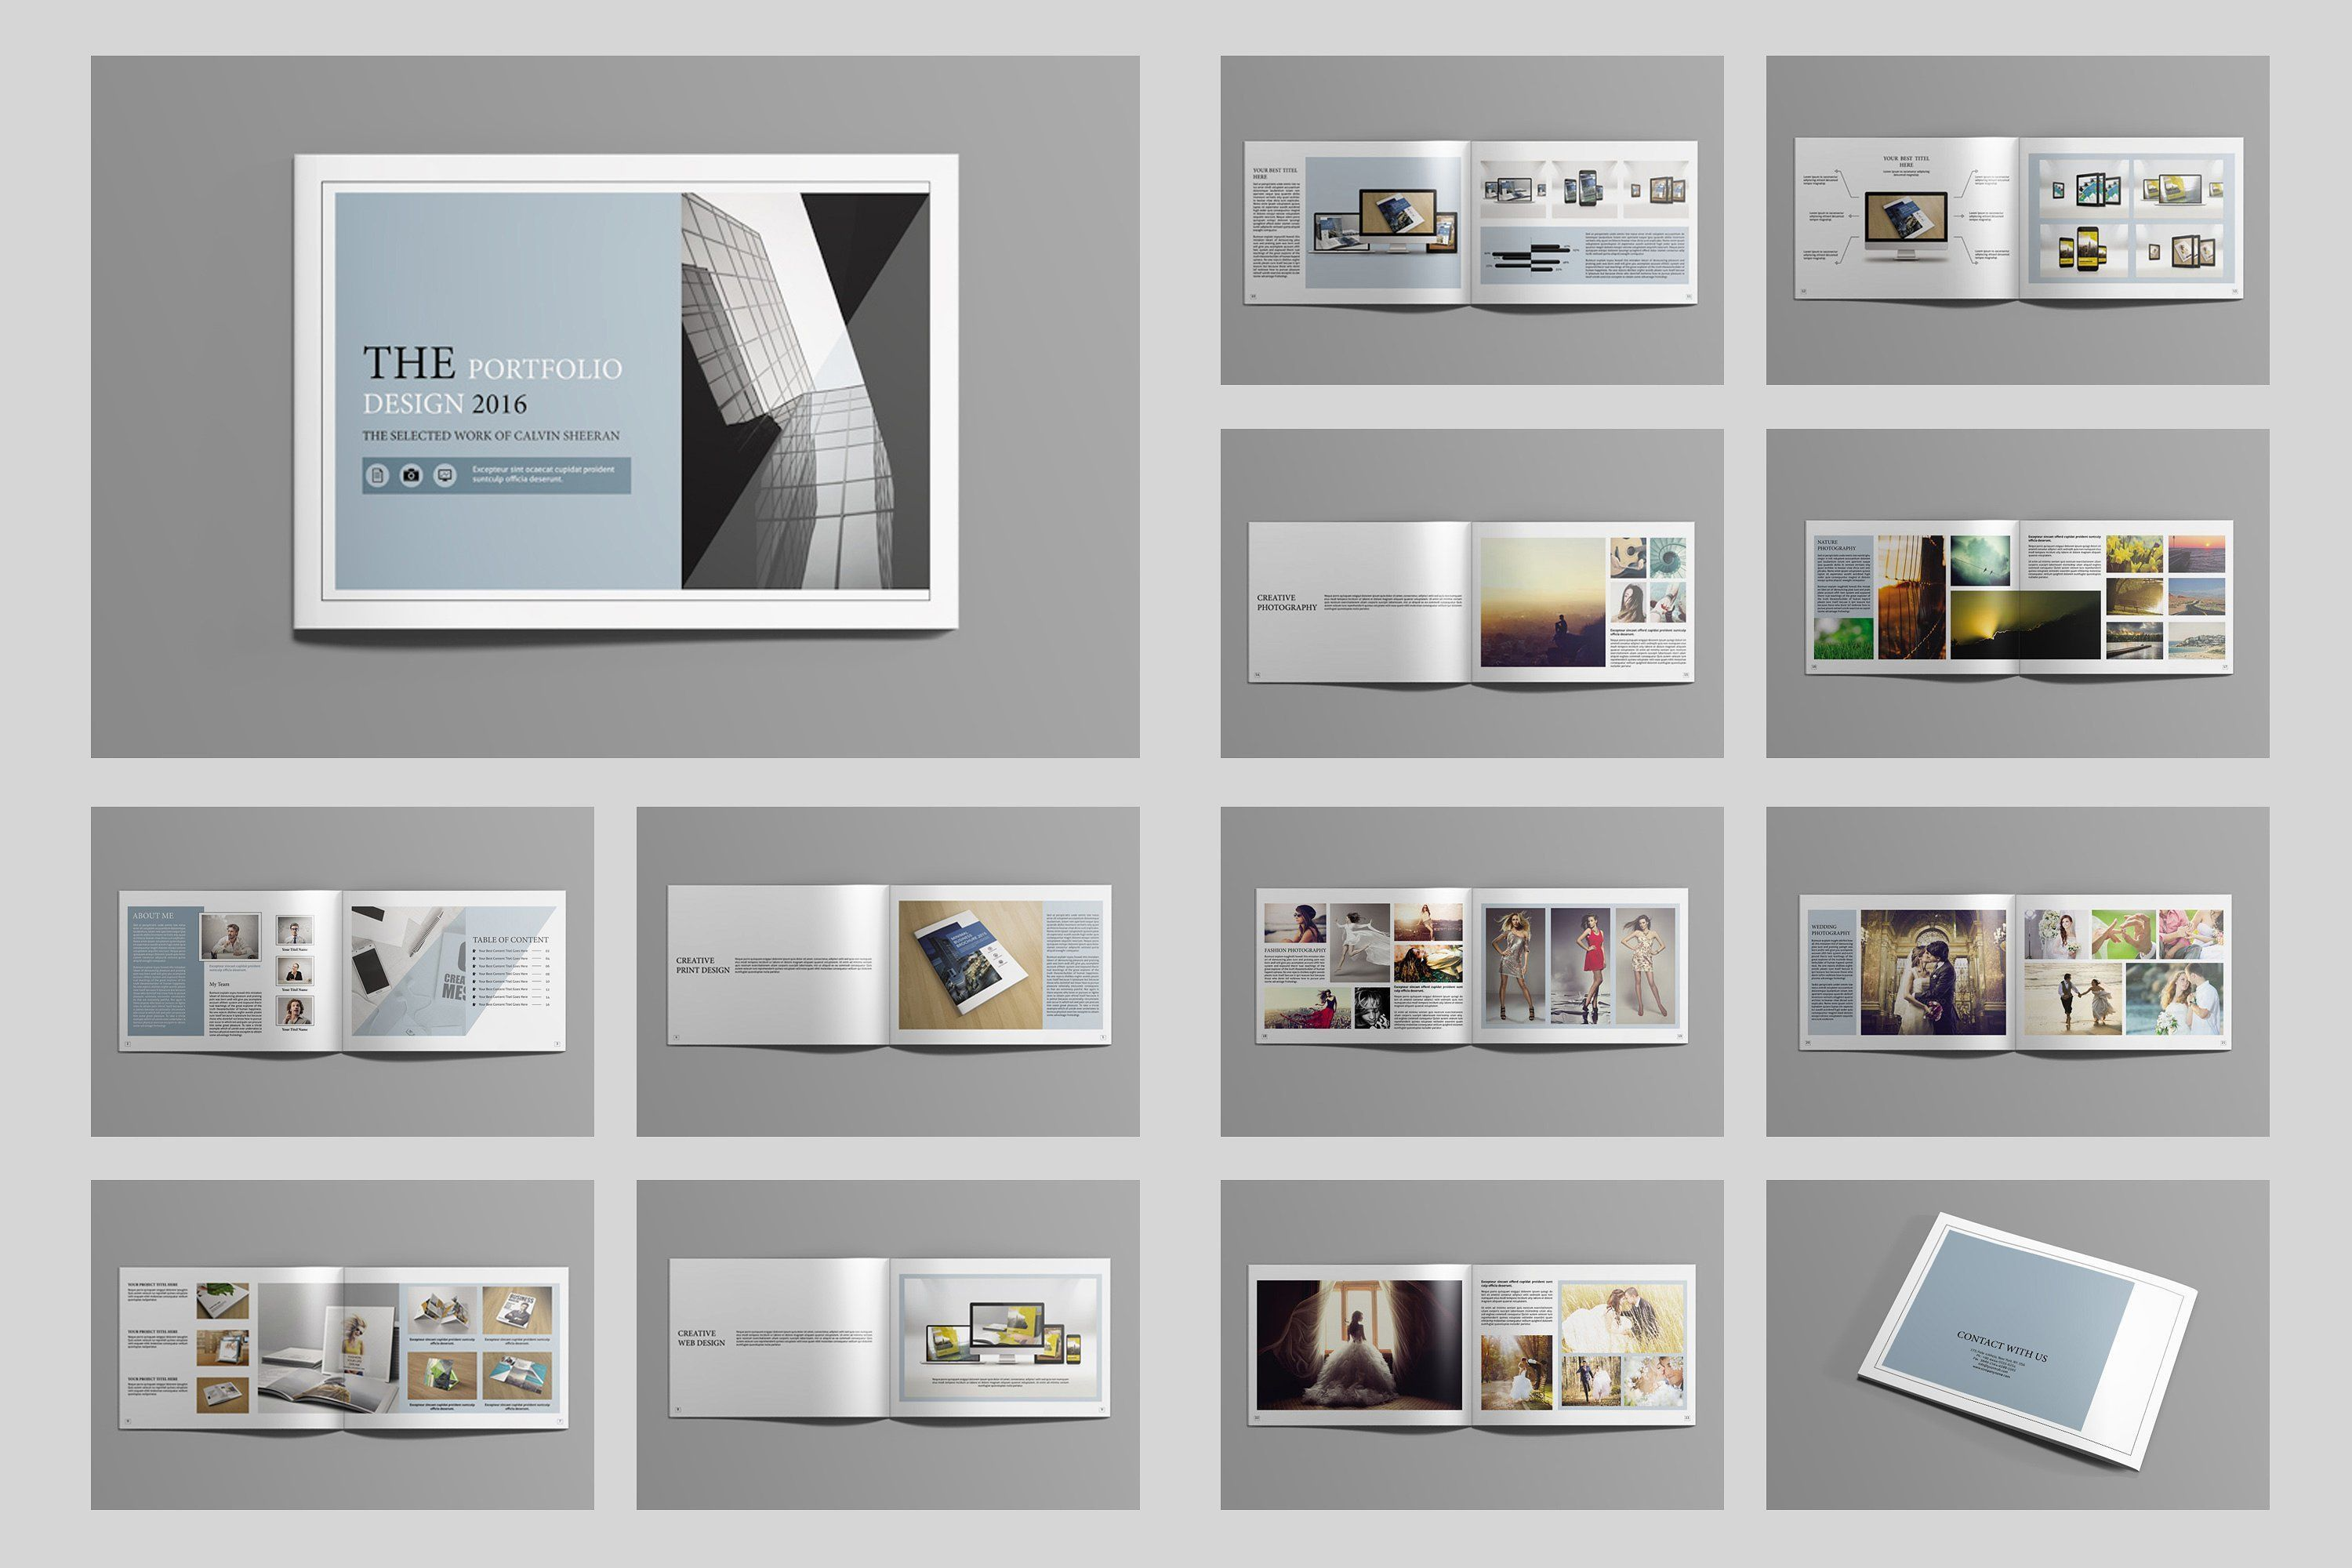 002 Stunning In Design Portfolio Template Inspiration  Templates Interior Layout Indesign FreeFull